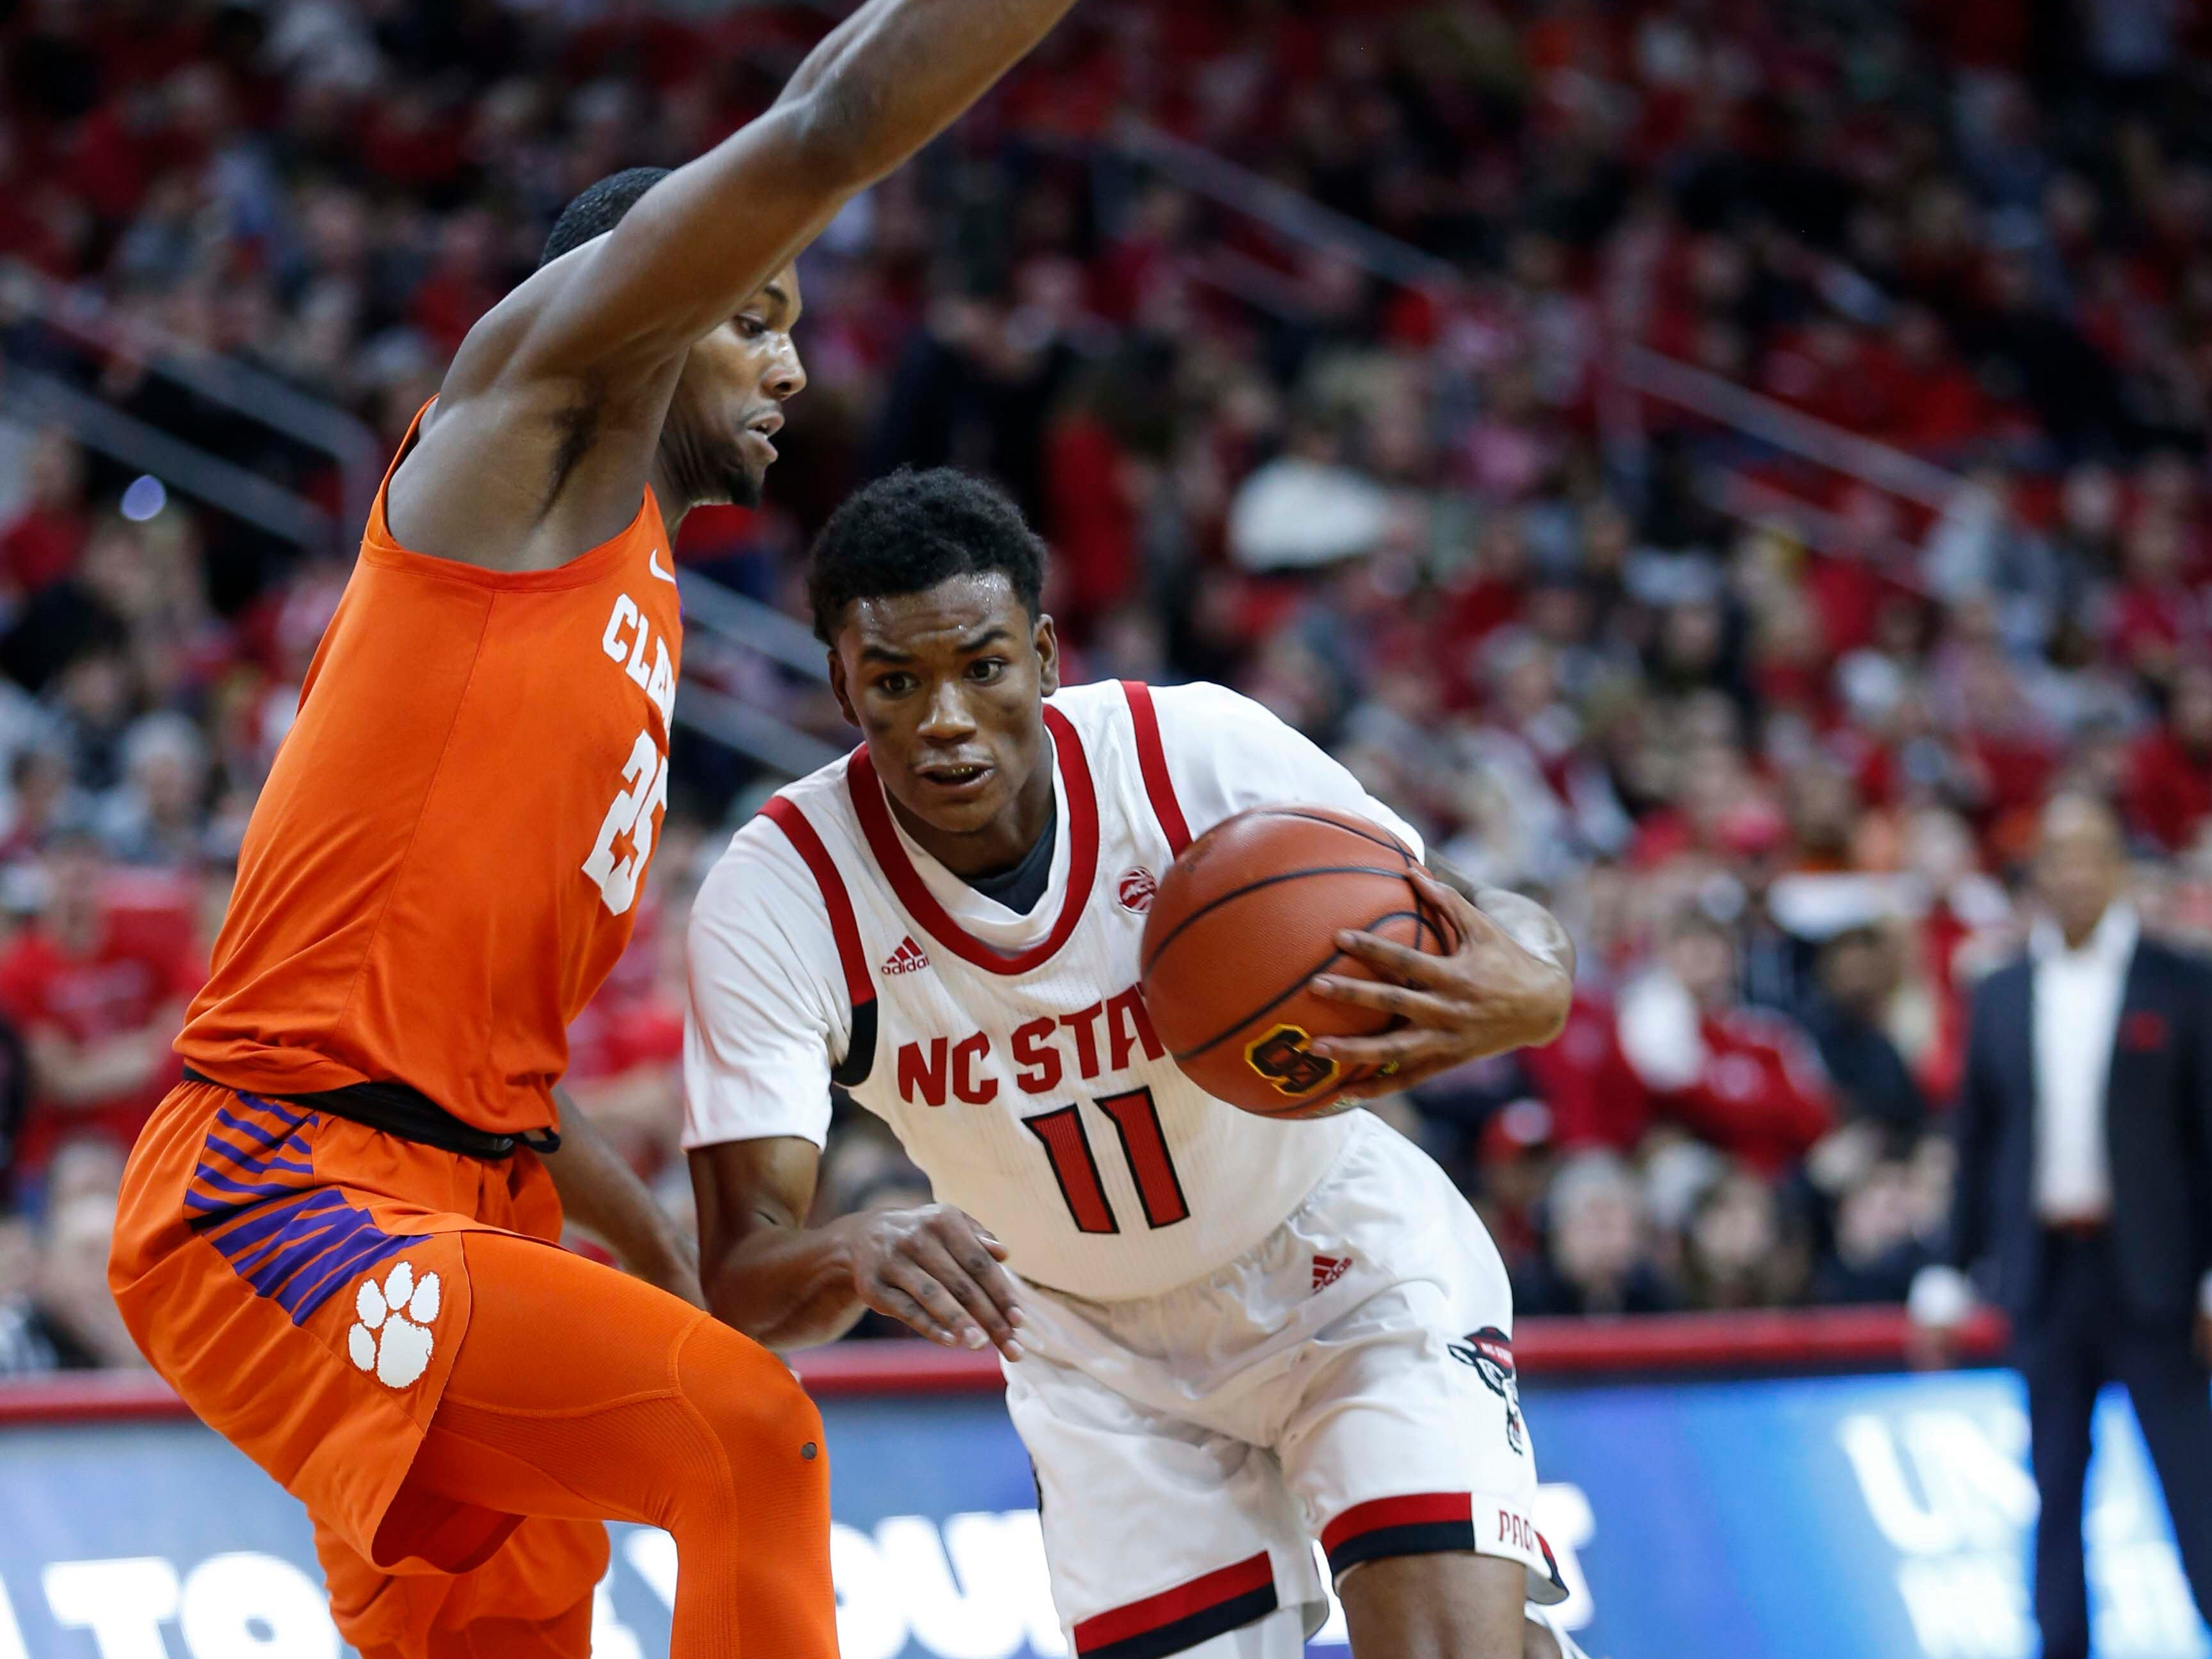 Jan 26, 2019; Raleigh, NC, USA; North Carolina State Wolfpack guard Markell Johnson (11) drives against Clemson Tigers forward Aamir Simms (25) in the first half at PNC Arena. Mandatory Credit: Nell Redmond-USA TODAY Sports